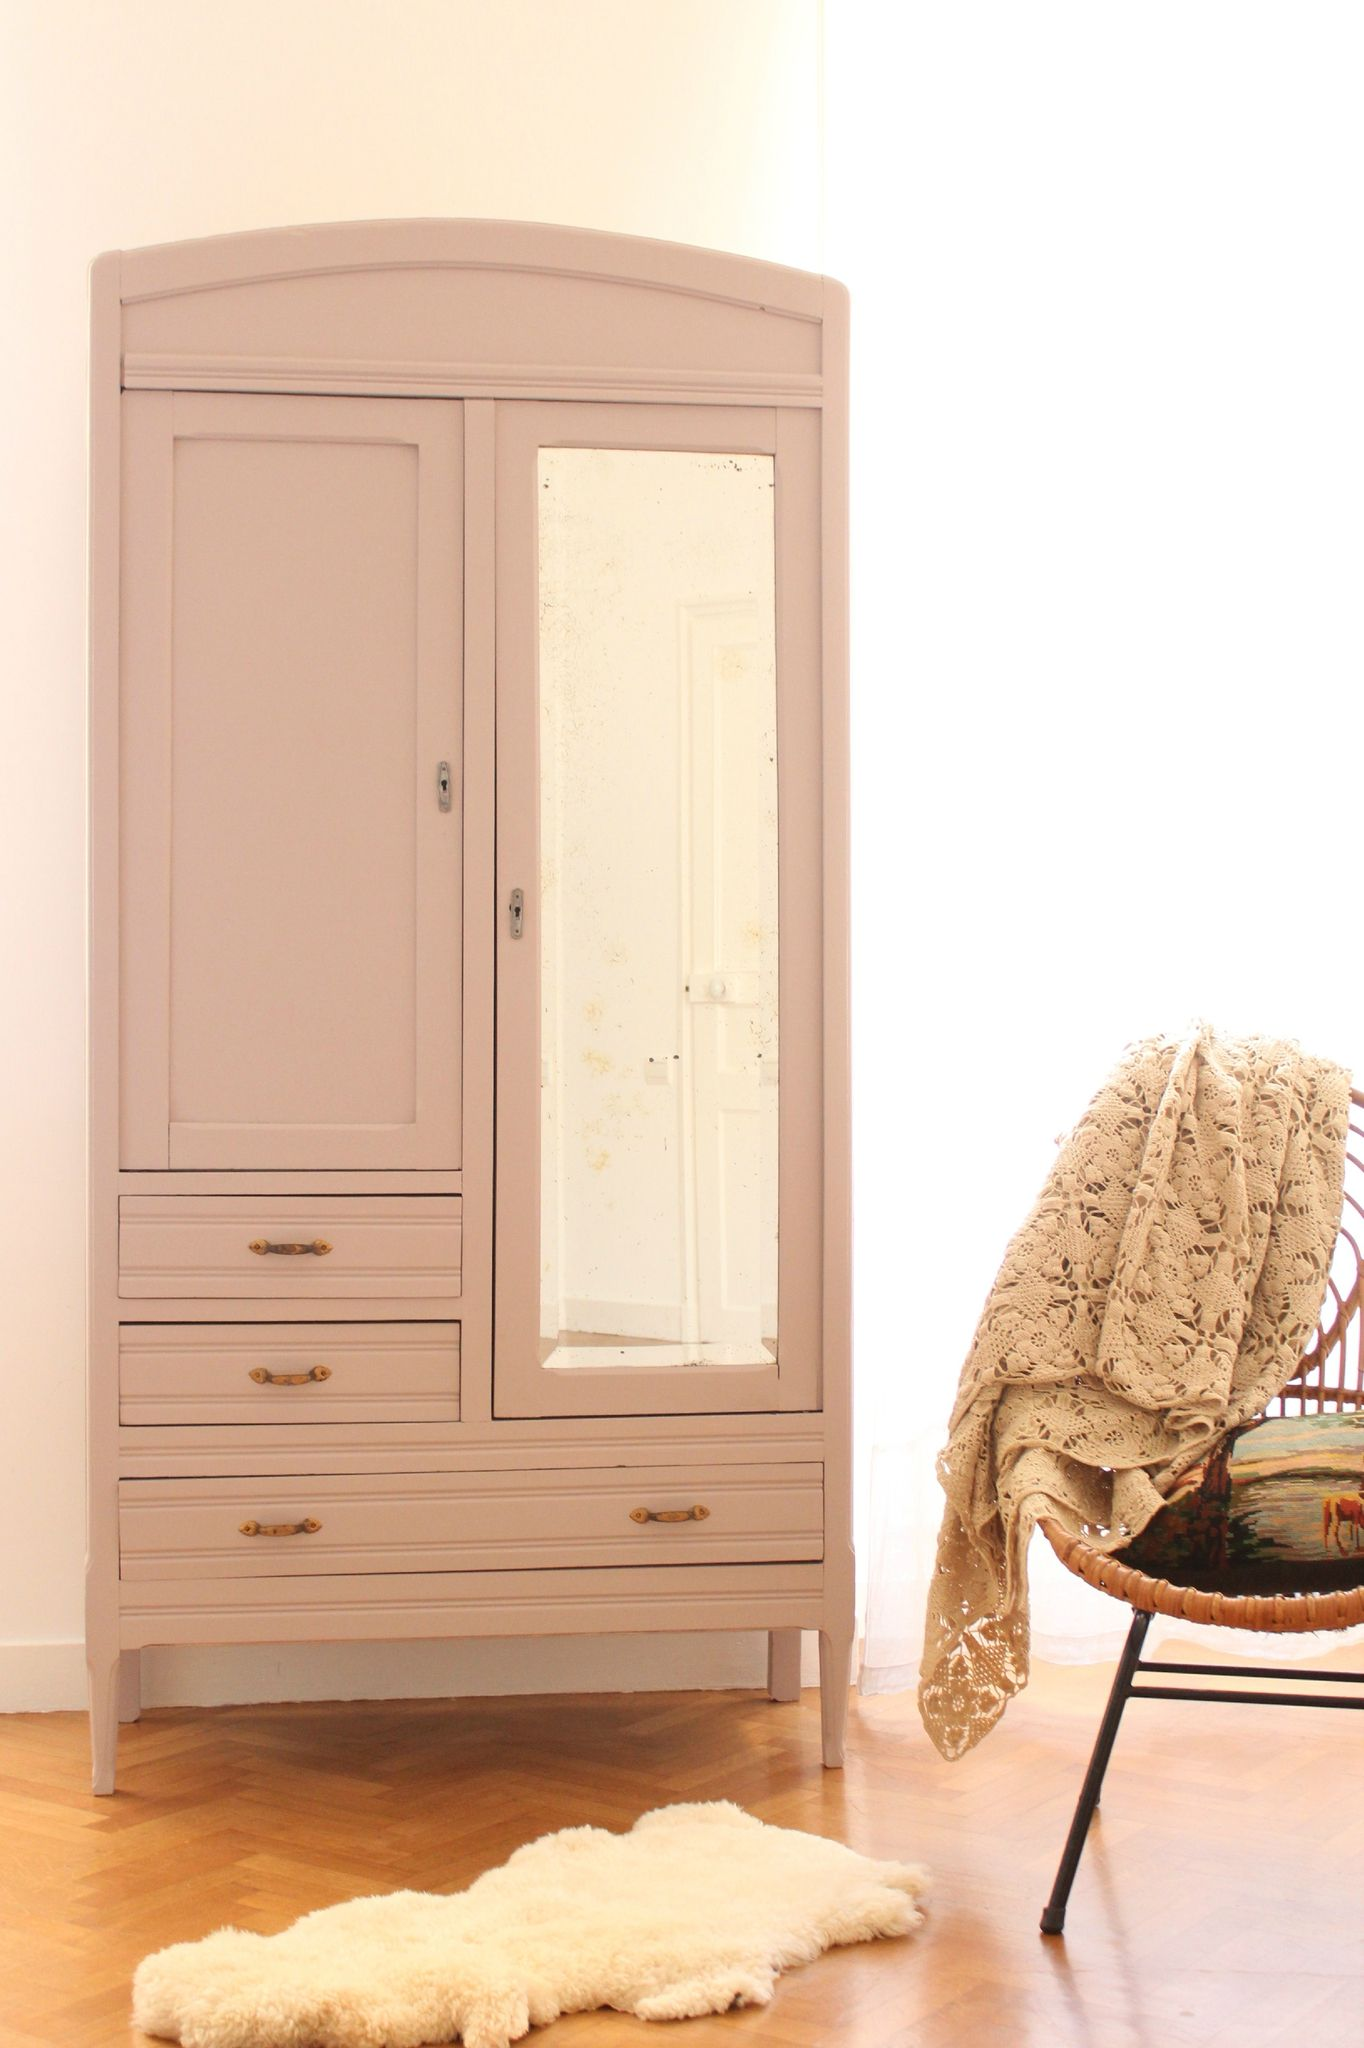 ARMOIRE ENFANT AU MIROIR - TRENDY LITTLE® | Painted furniture ...